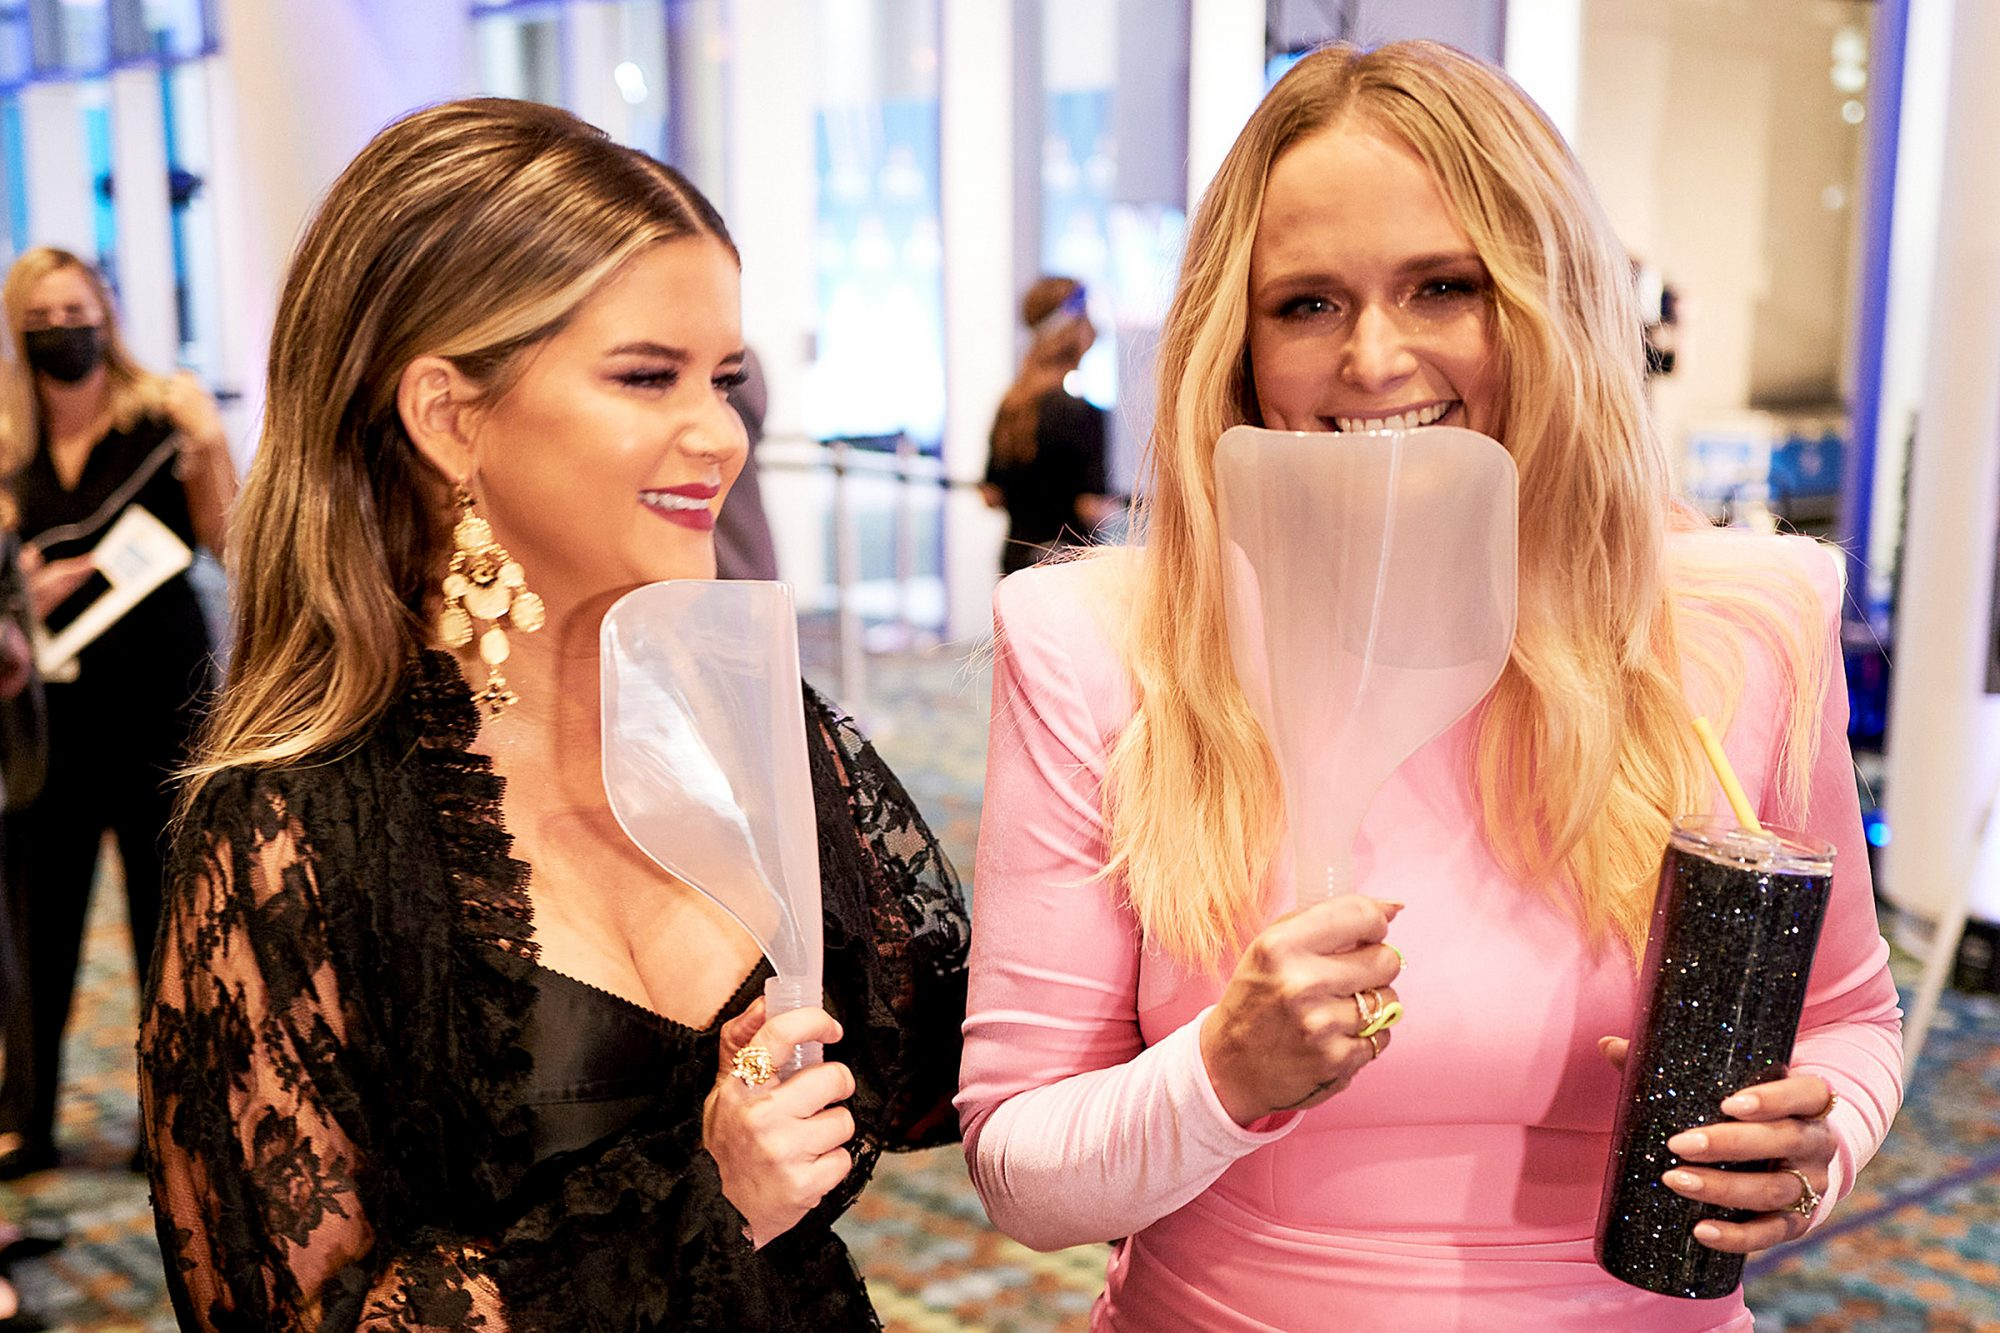 Maren Morris and Miranda Lambert attend the 54th Annual CMA Awards at Music City Center on November 11, 2020 in Nashville, Tennessee